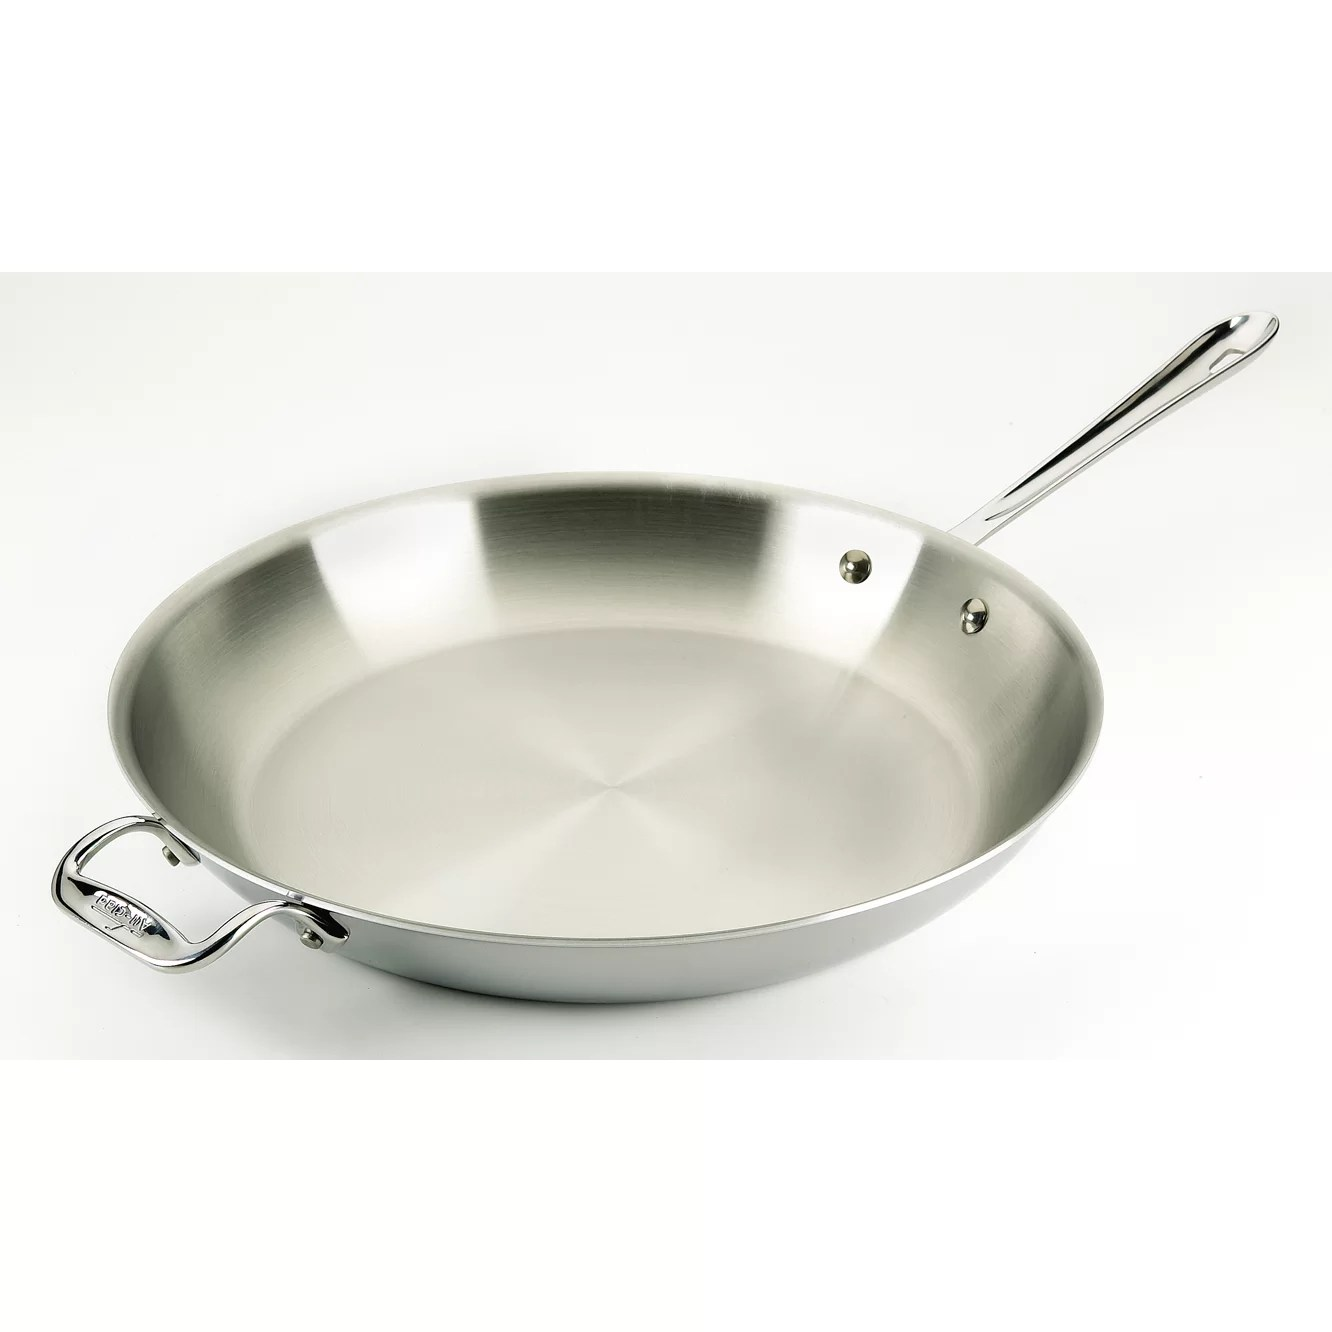 Stainless Steel Frying Pan All Clad Stainless Steel Fry Pan And Reviews Wayfair